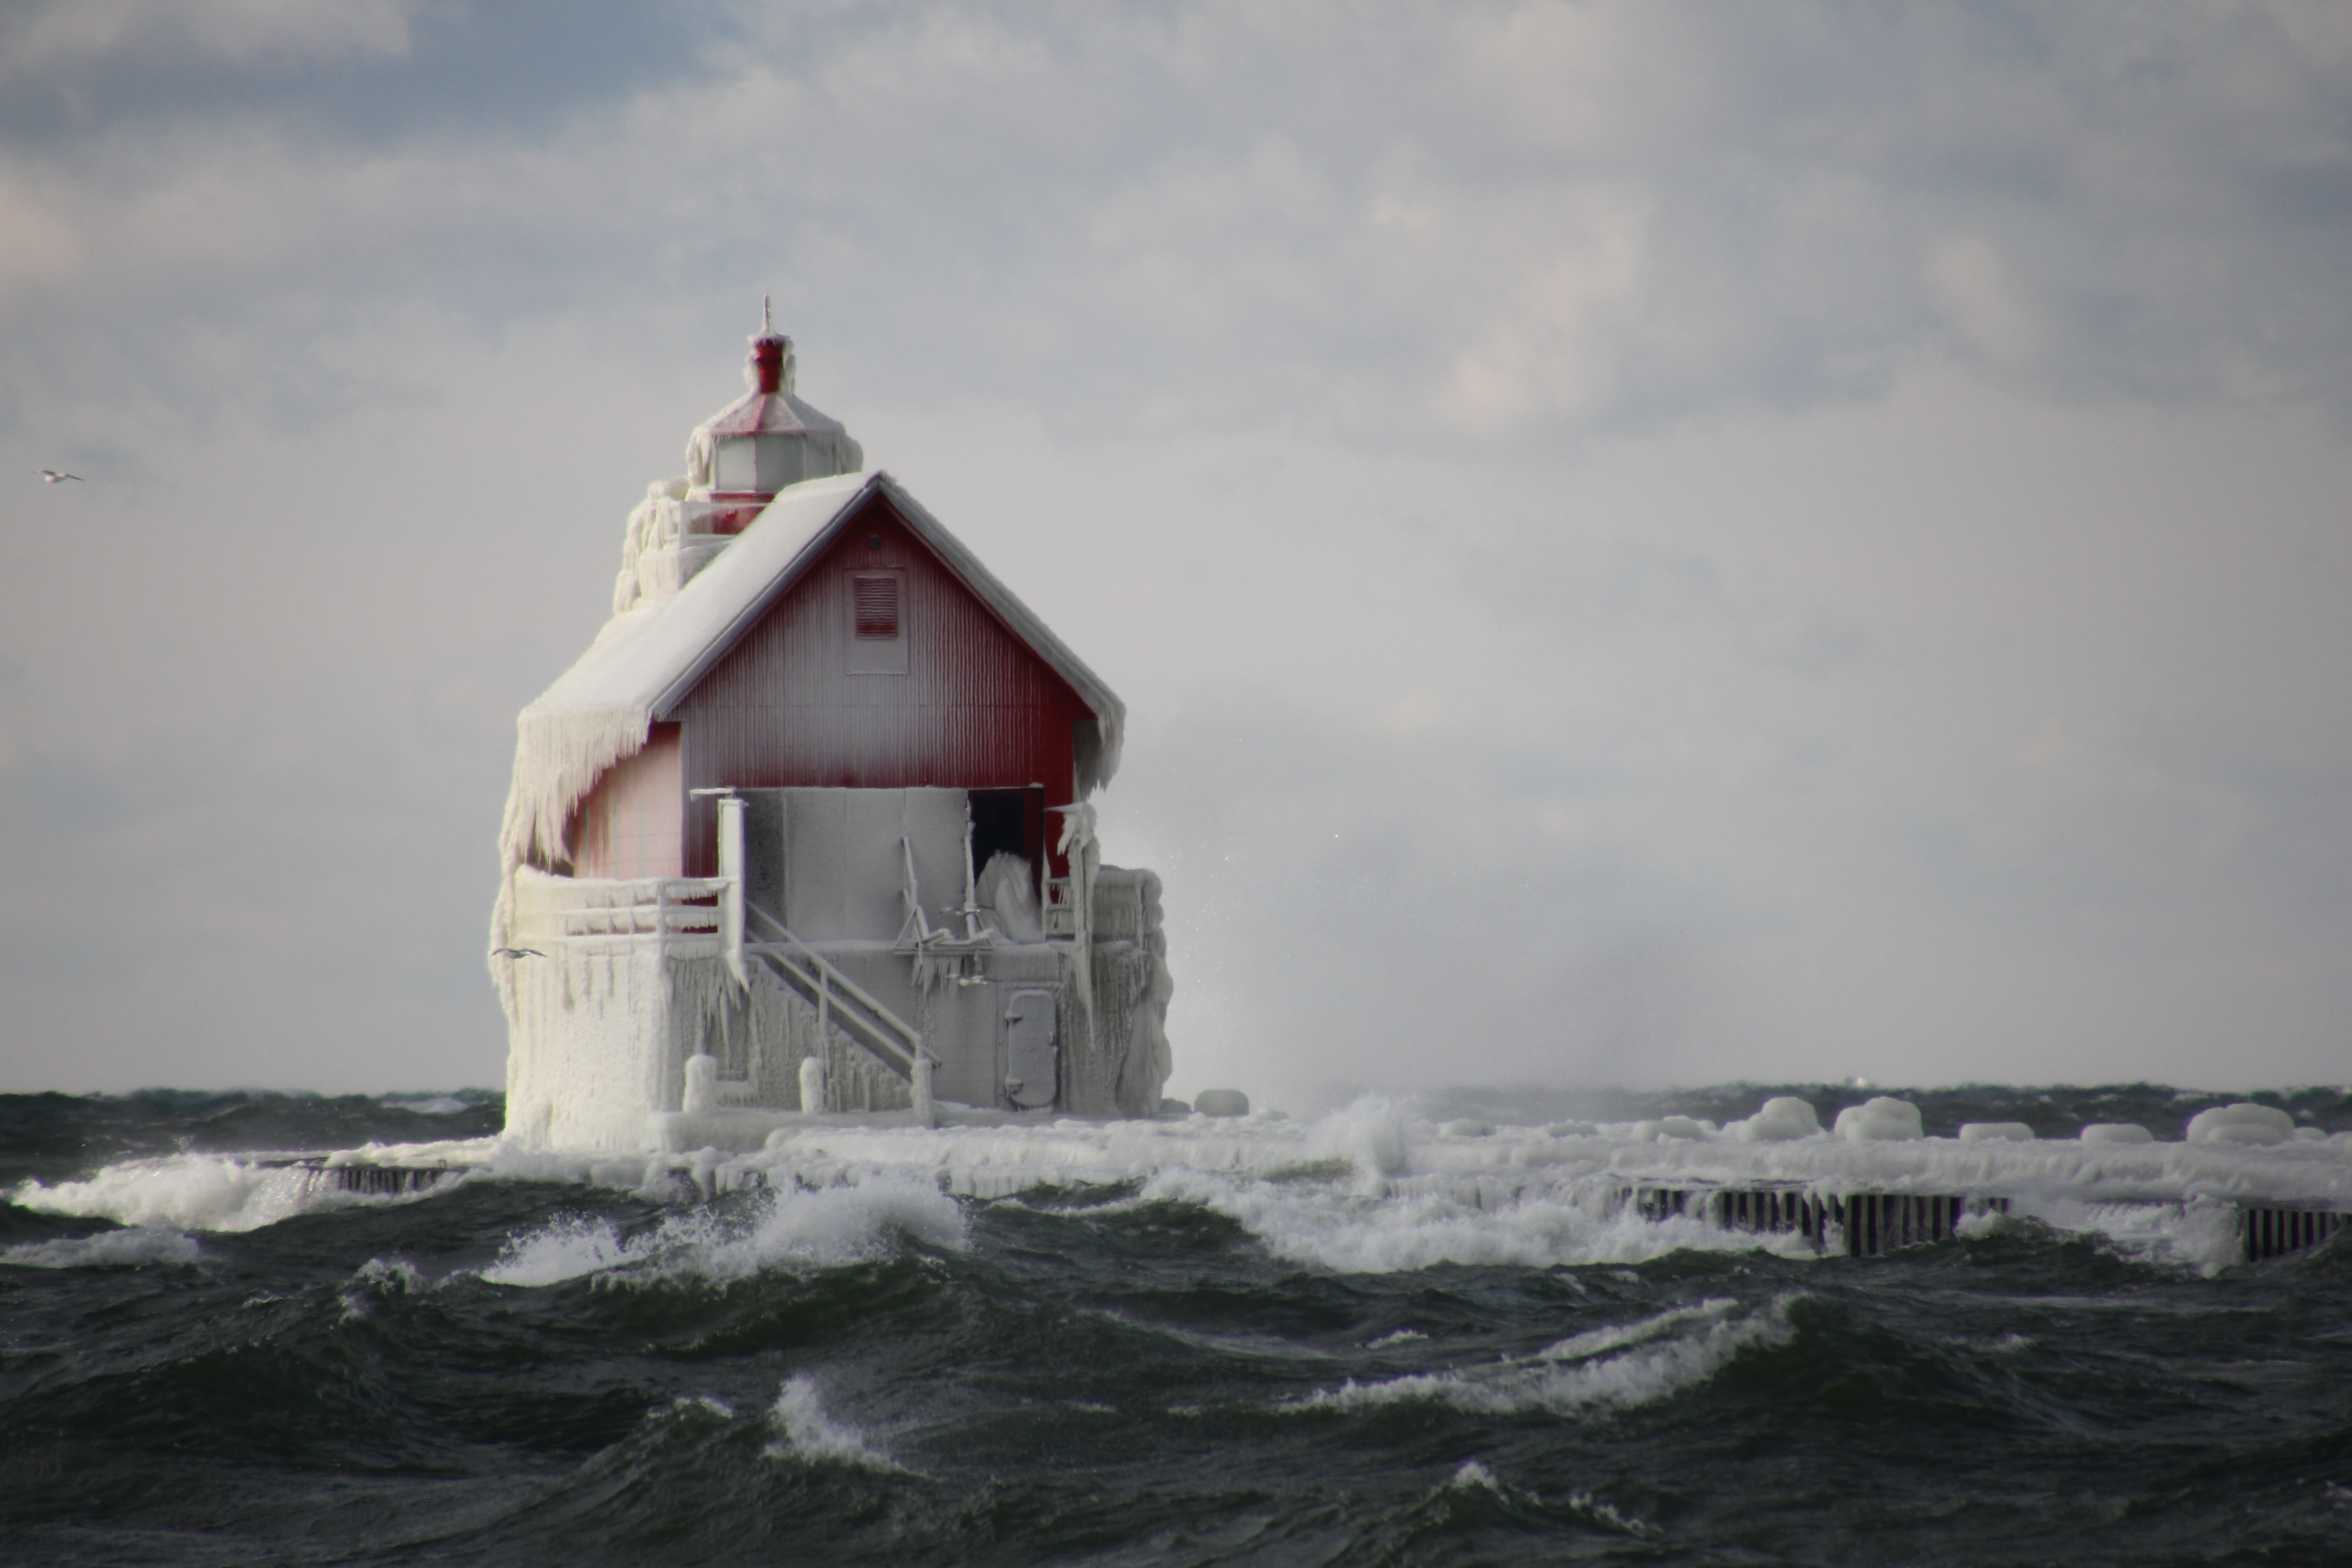 A small building surrounded by ocean waves and frozen snow